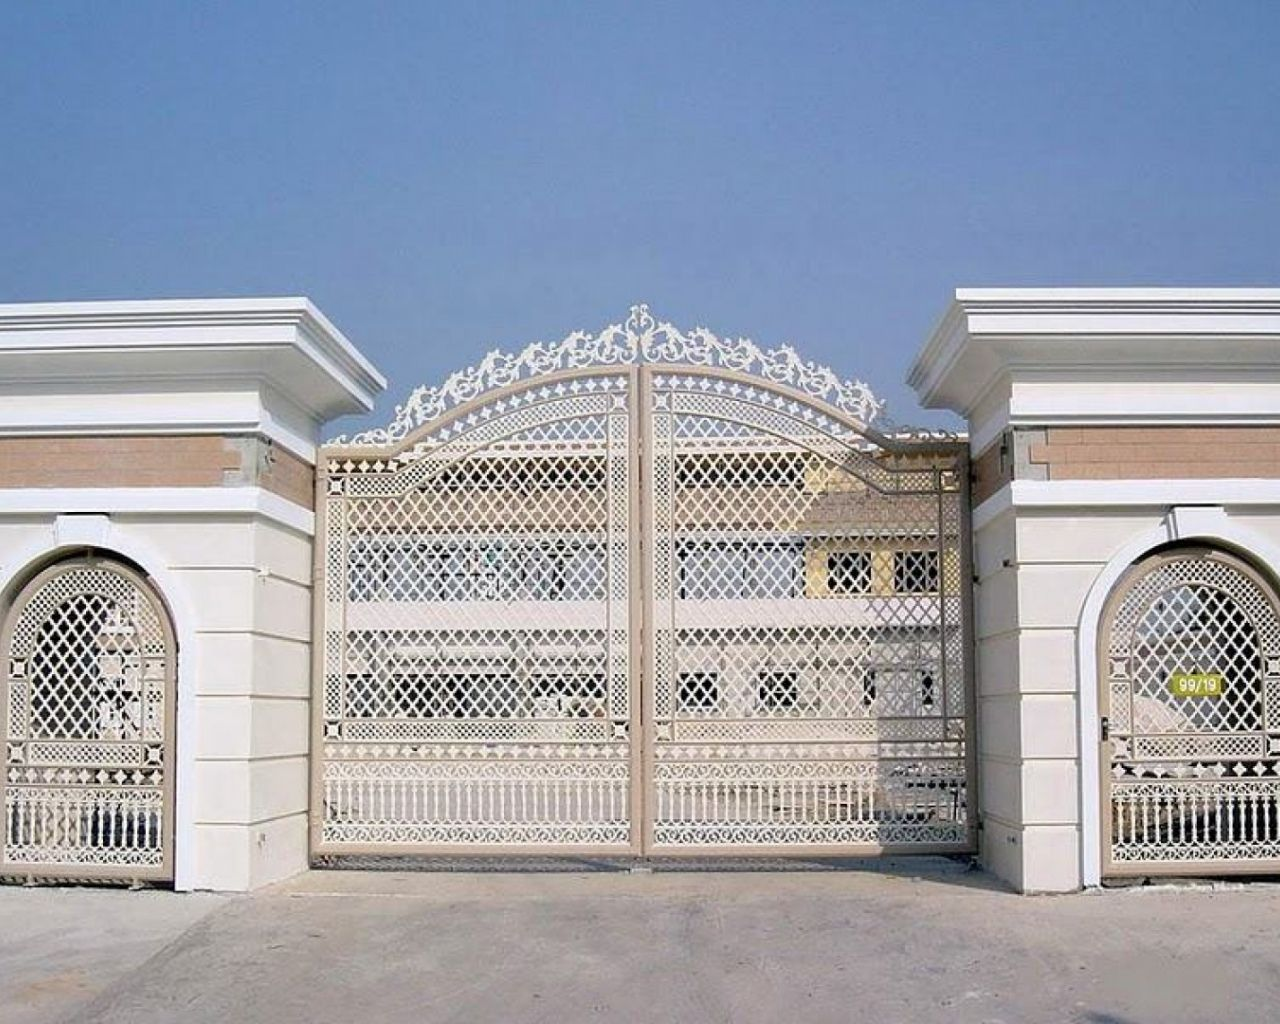 neo classic style entry gate Google Search Front gate